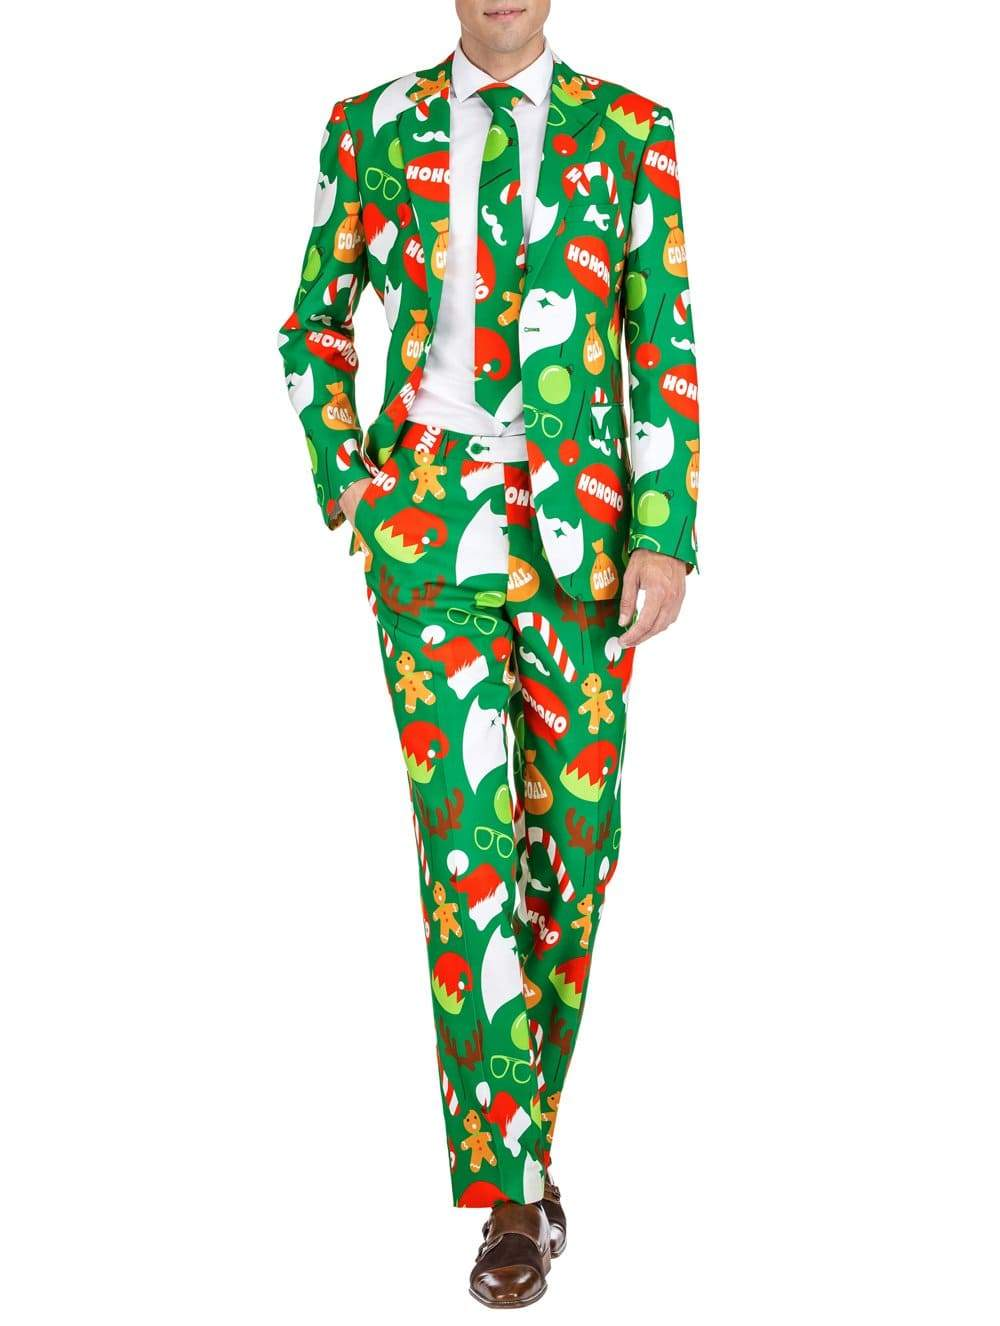 DAILY HAUTE Men's Suits CHRISTMAS PARTY / 36R/30W Braveman Men's Classic Fit Ugly Christmas Suits with Matching Tie